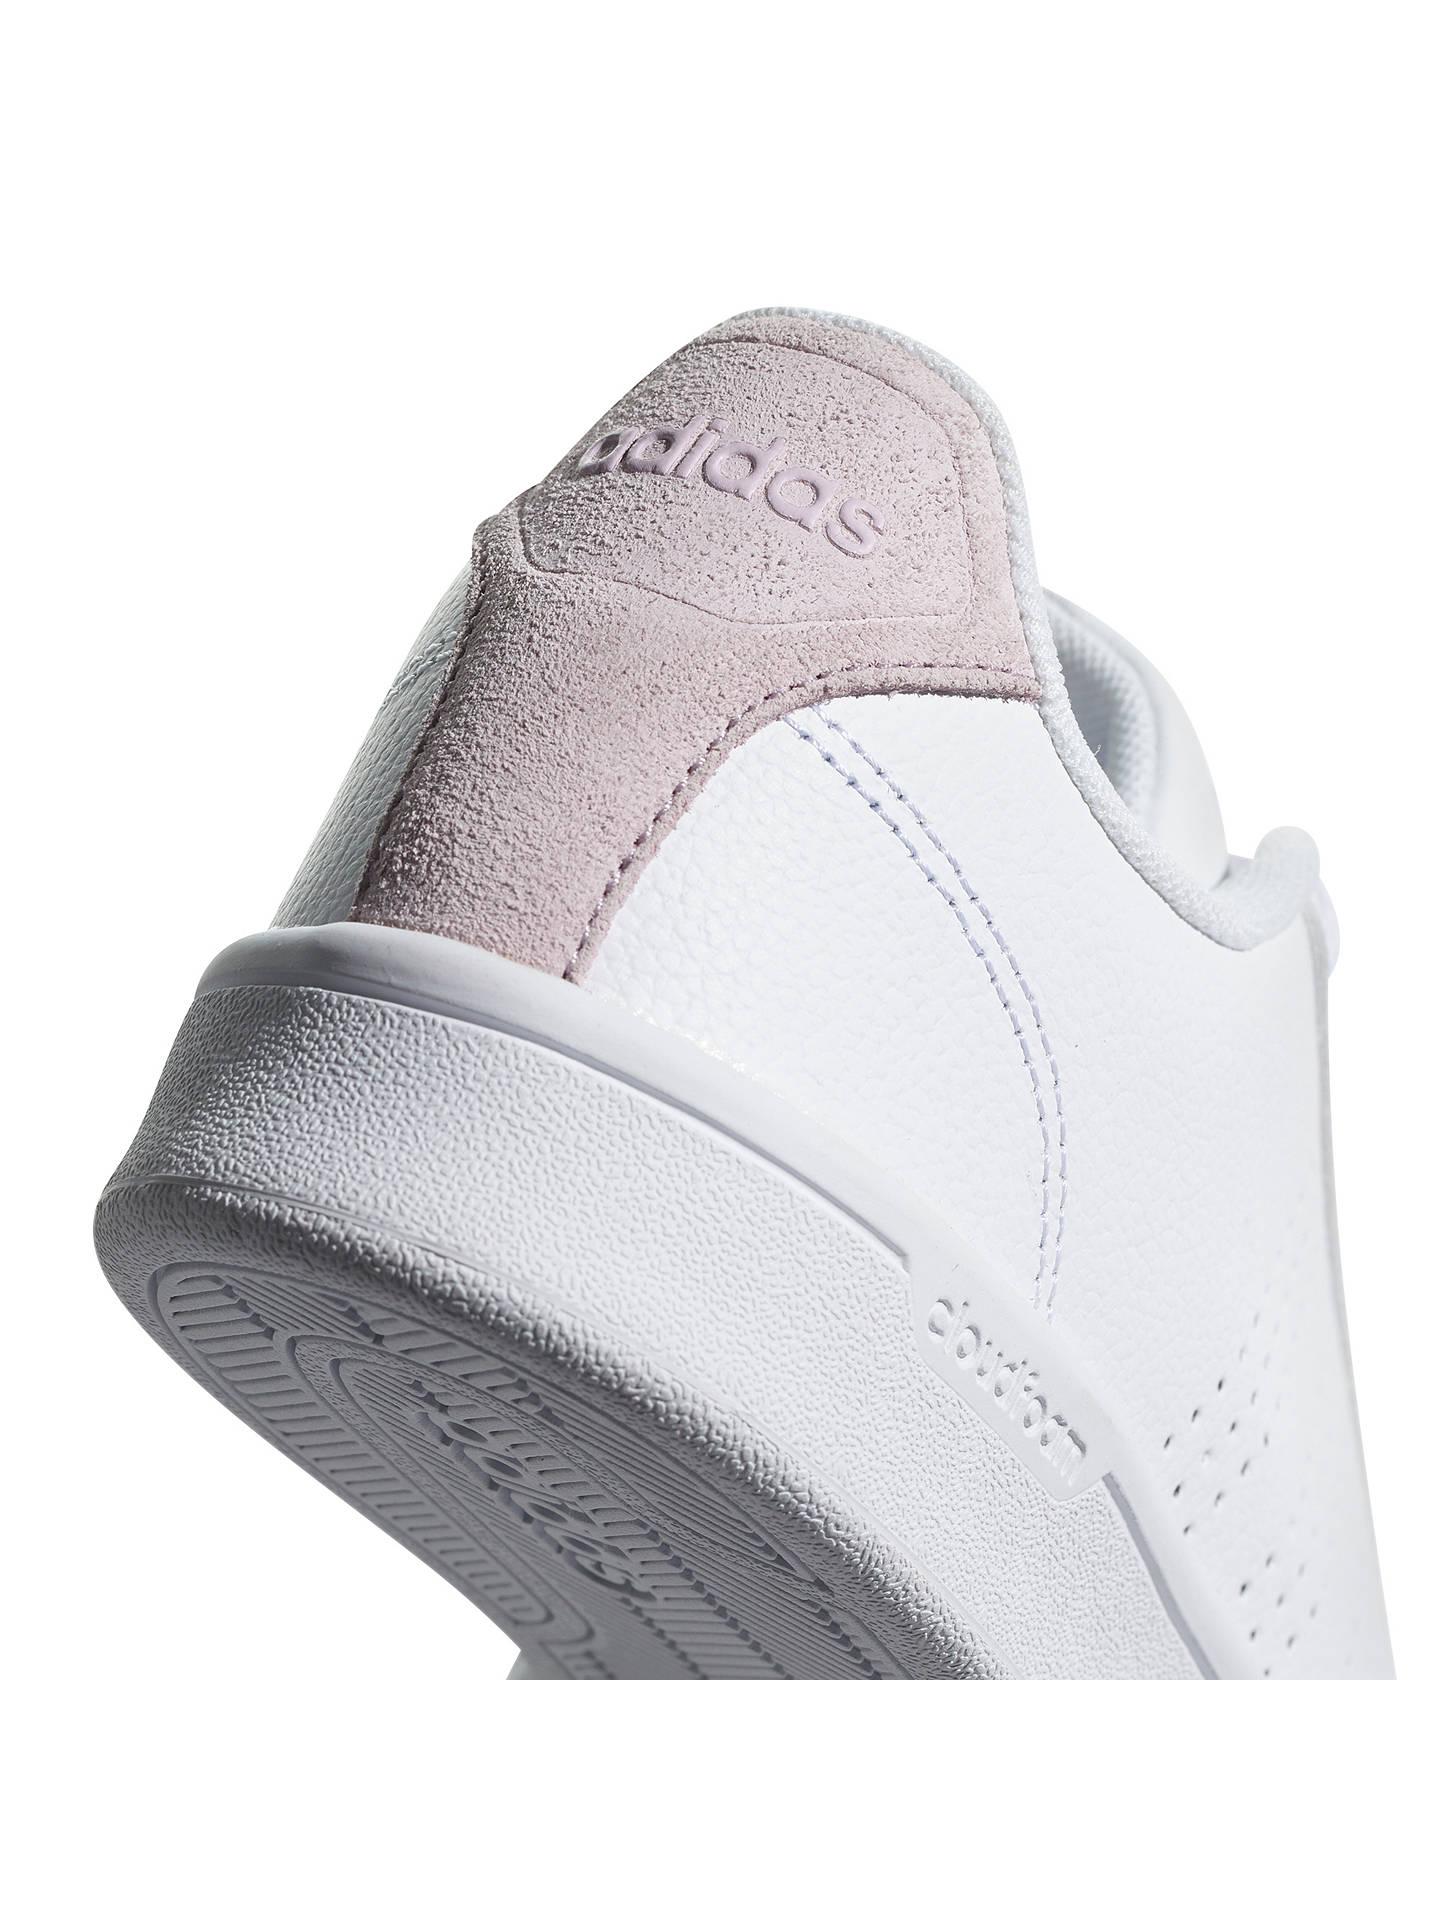 best loved 42d0c a5ae9 ... Buy adidas Neo Cloudfoam Advantage Women s Trainers, White Pink, 4  Online at johnlewis ...